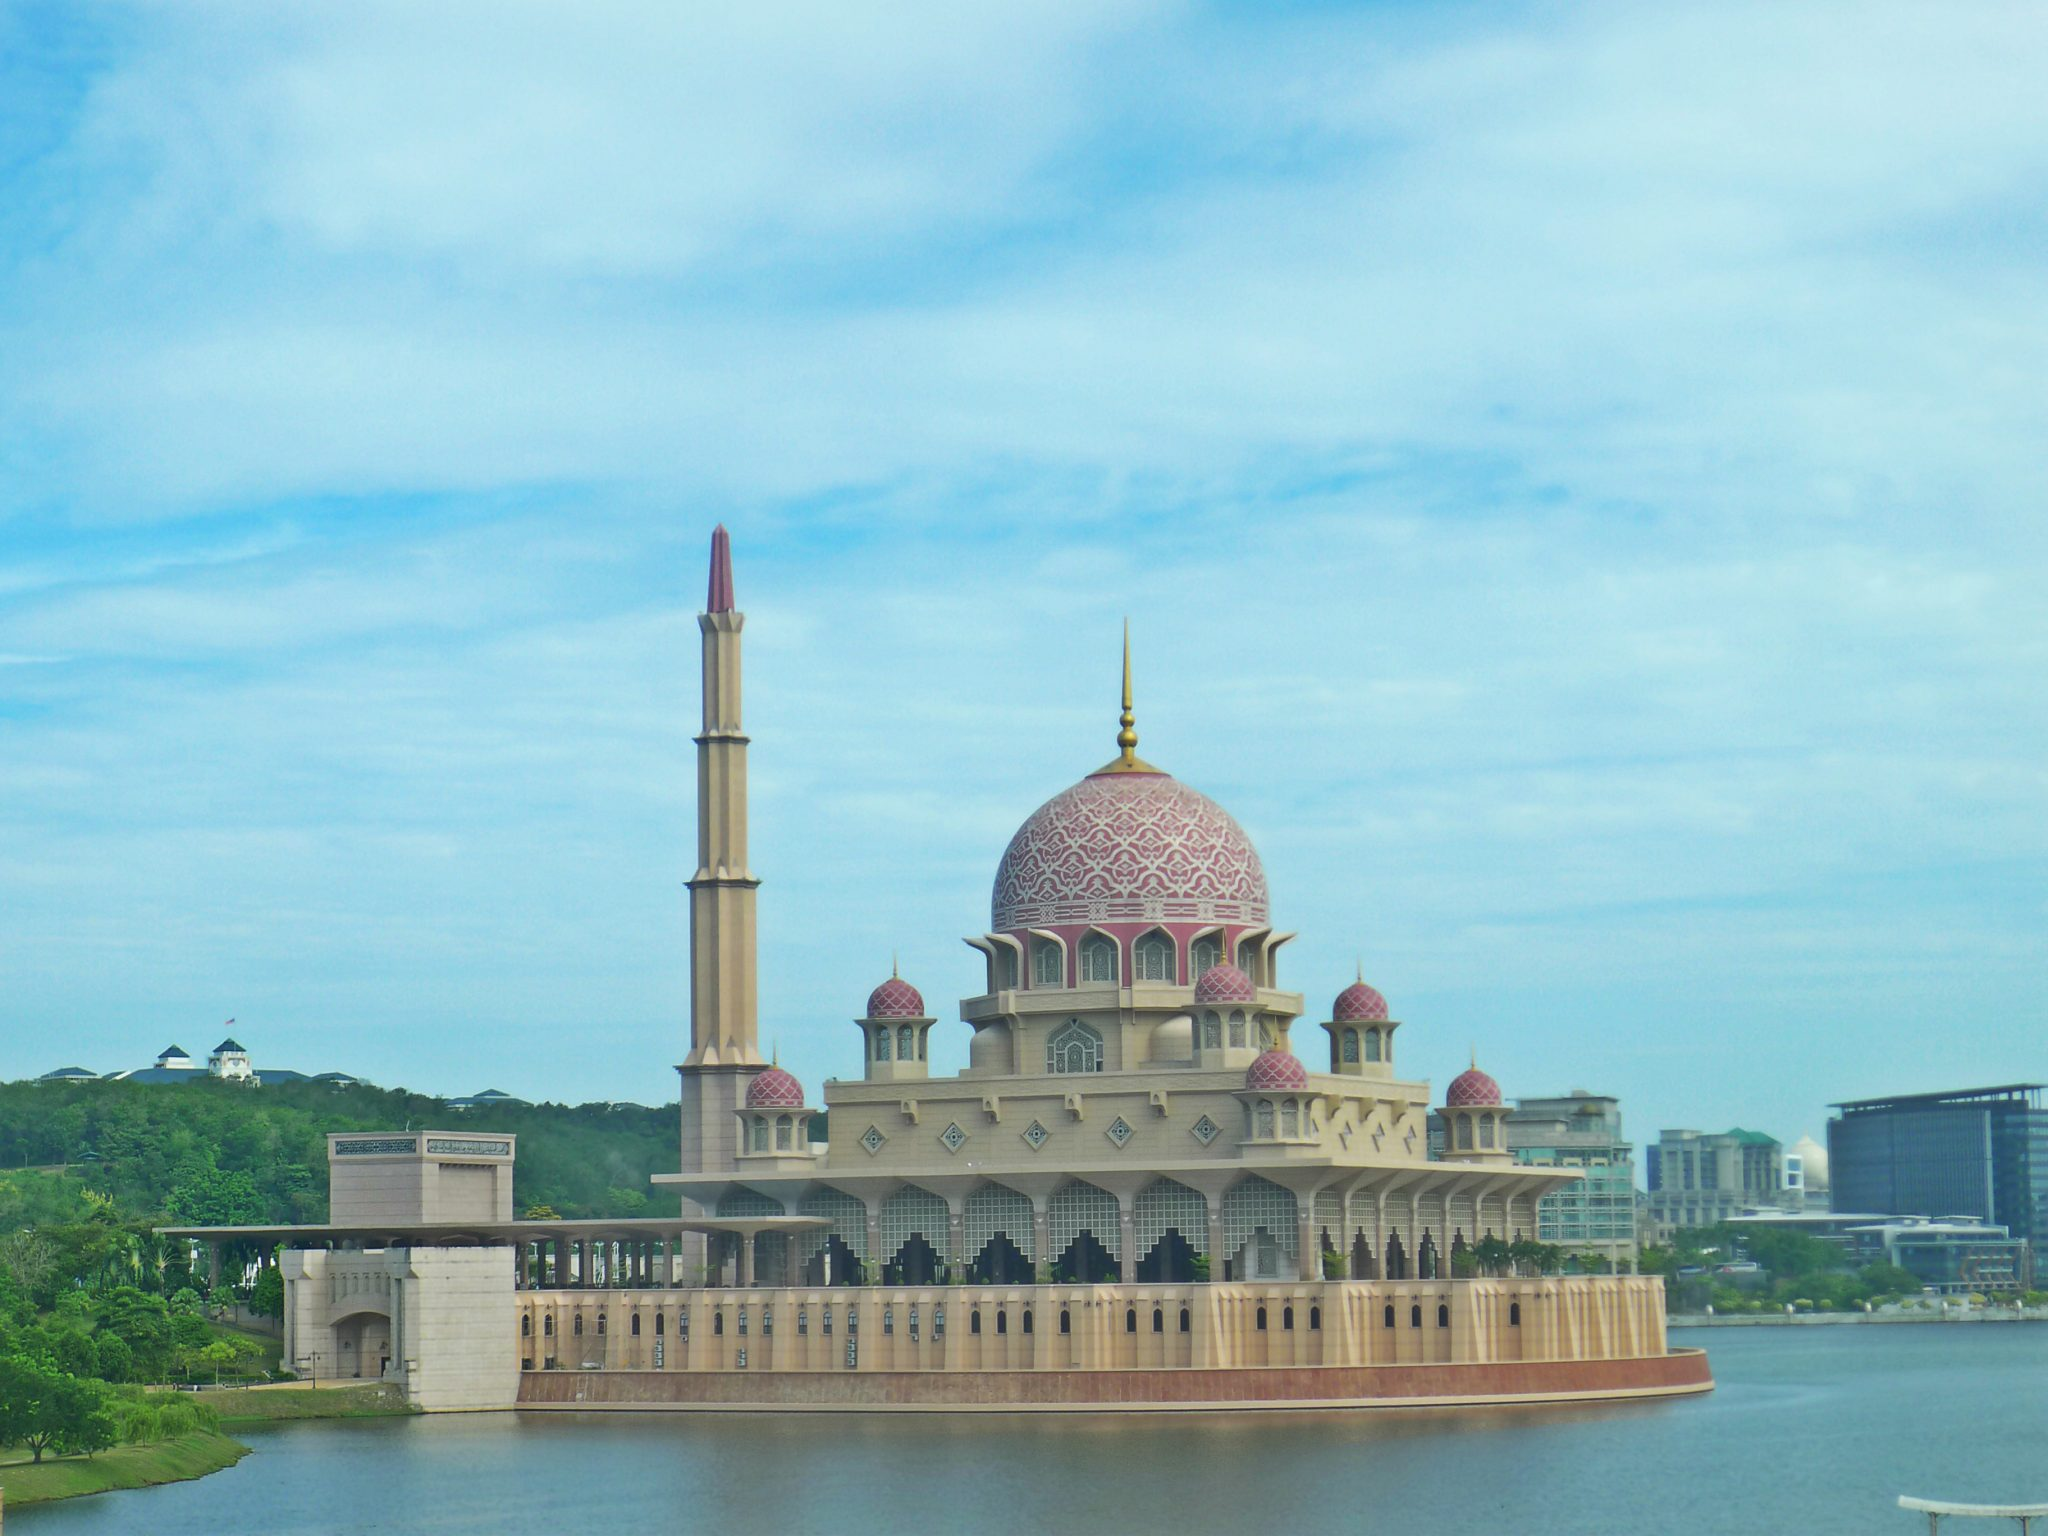 The beautiful Masjid Putra.